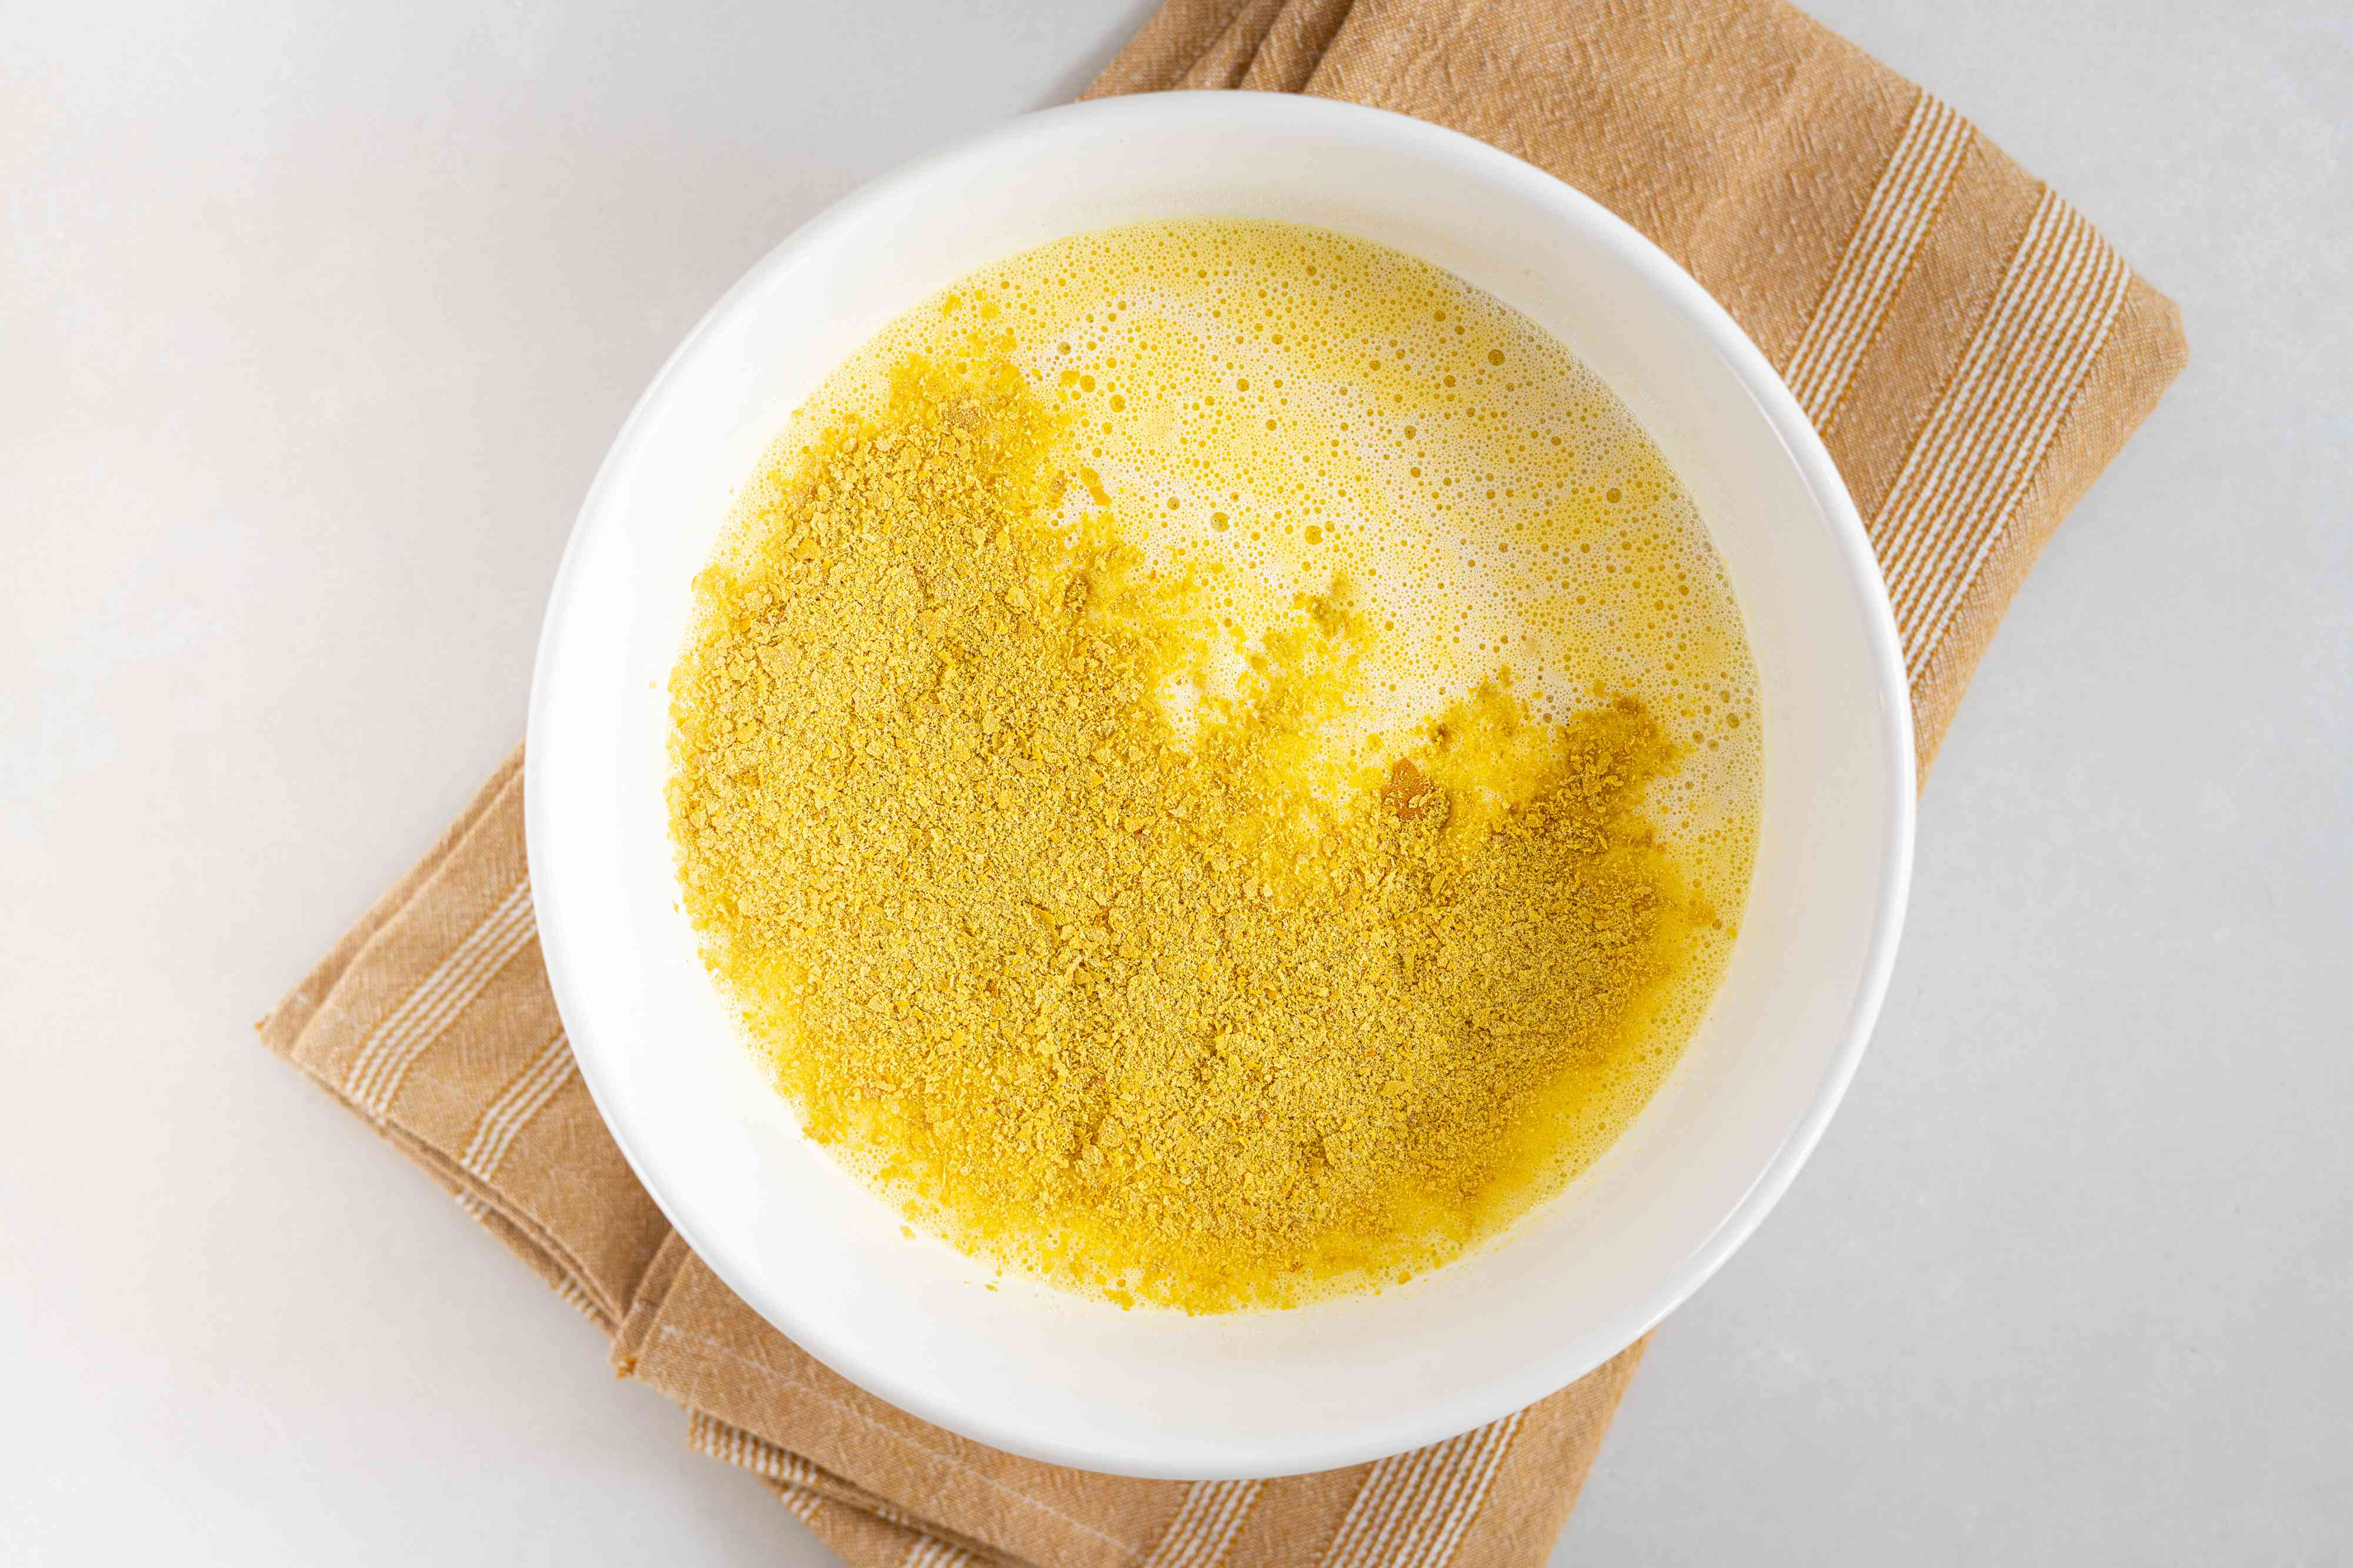 Gradually add the almond milk, nutritional yeast, and salt to the egg mixture